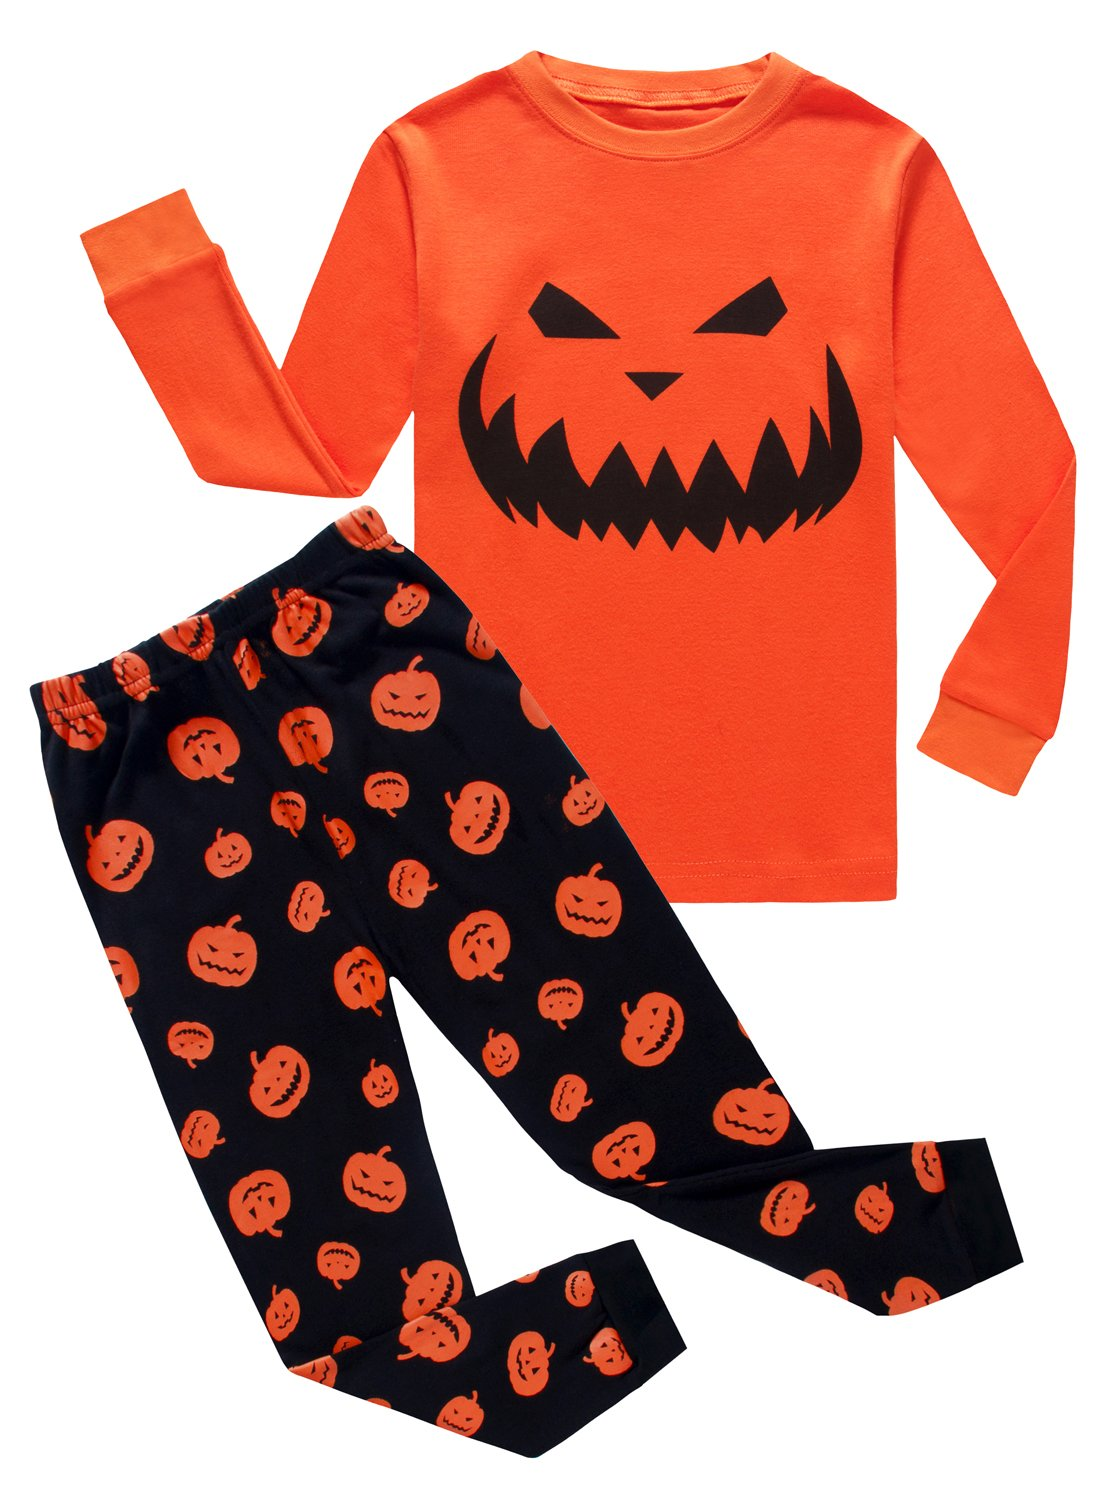 Family Feeling Halloween Pumpkin Little Boys Girls Pajamas Sets 100% Cotton Clothes Toddler Kids Pjs Size 5